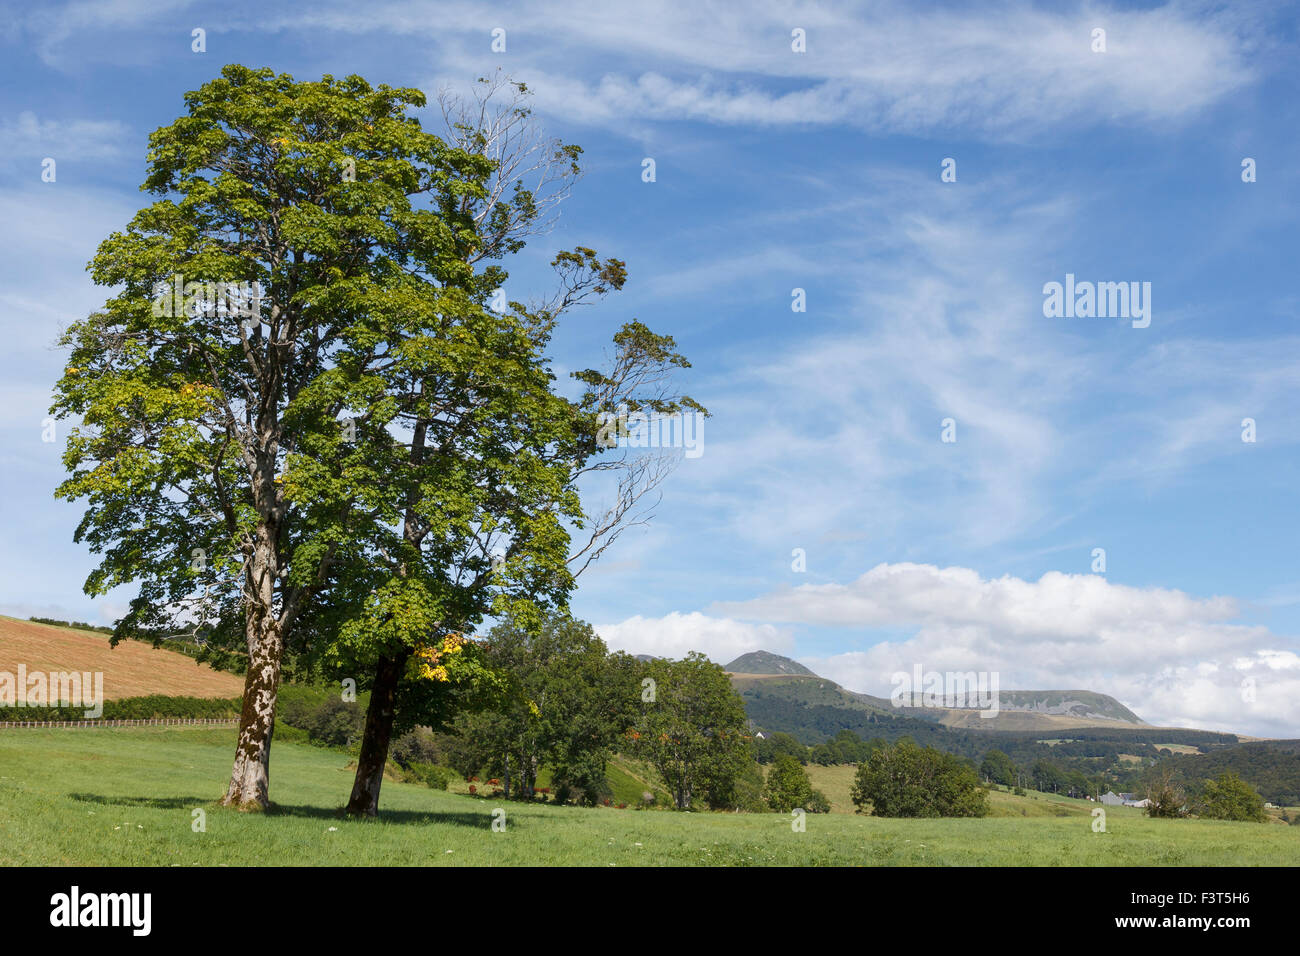 View to the mountain of Puy de Sancy from the village of Chastreix in the Auvergne, France - Stock Image